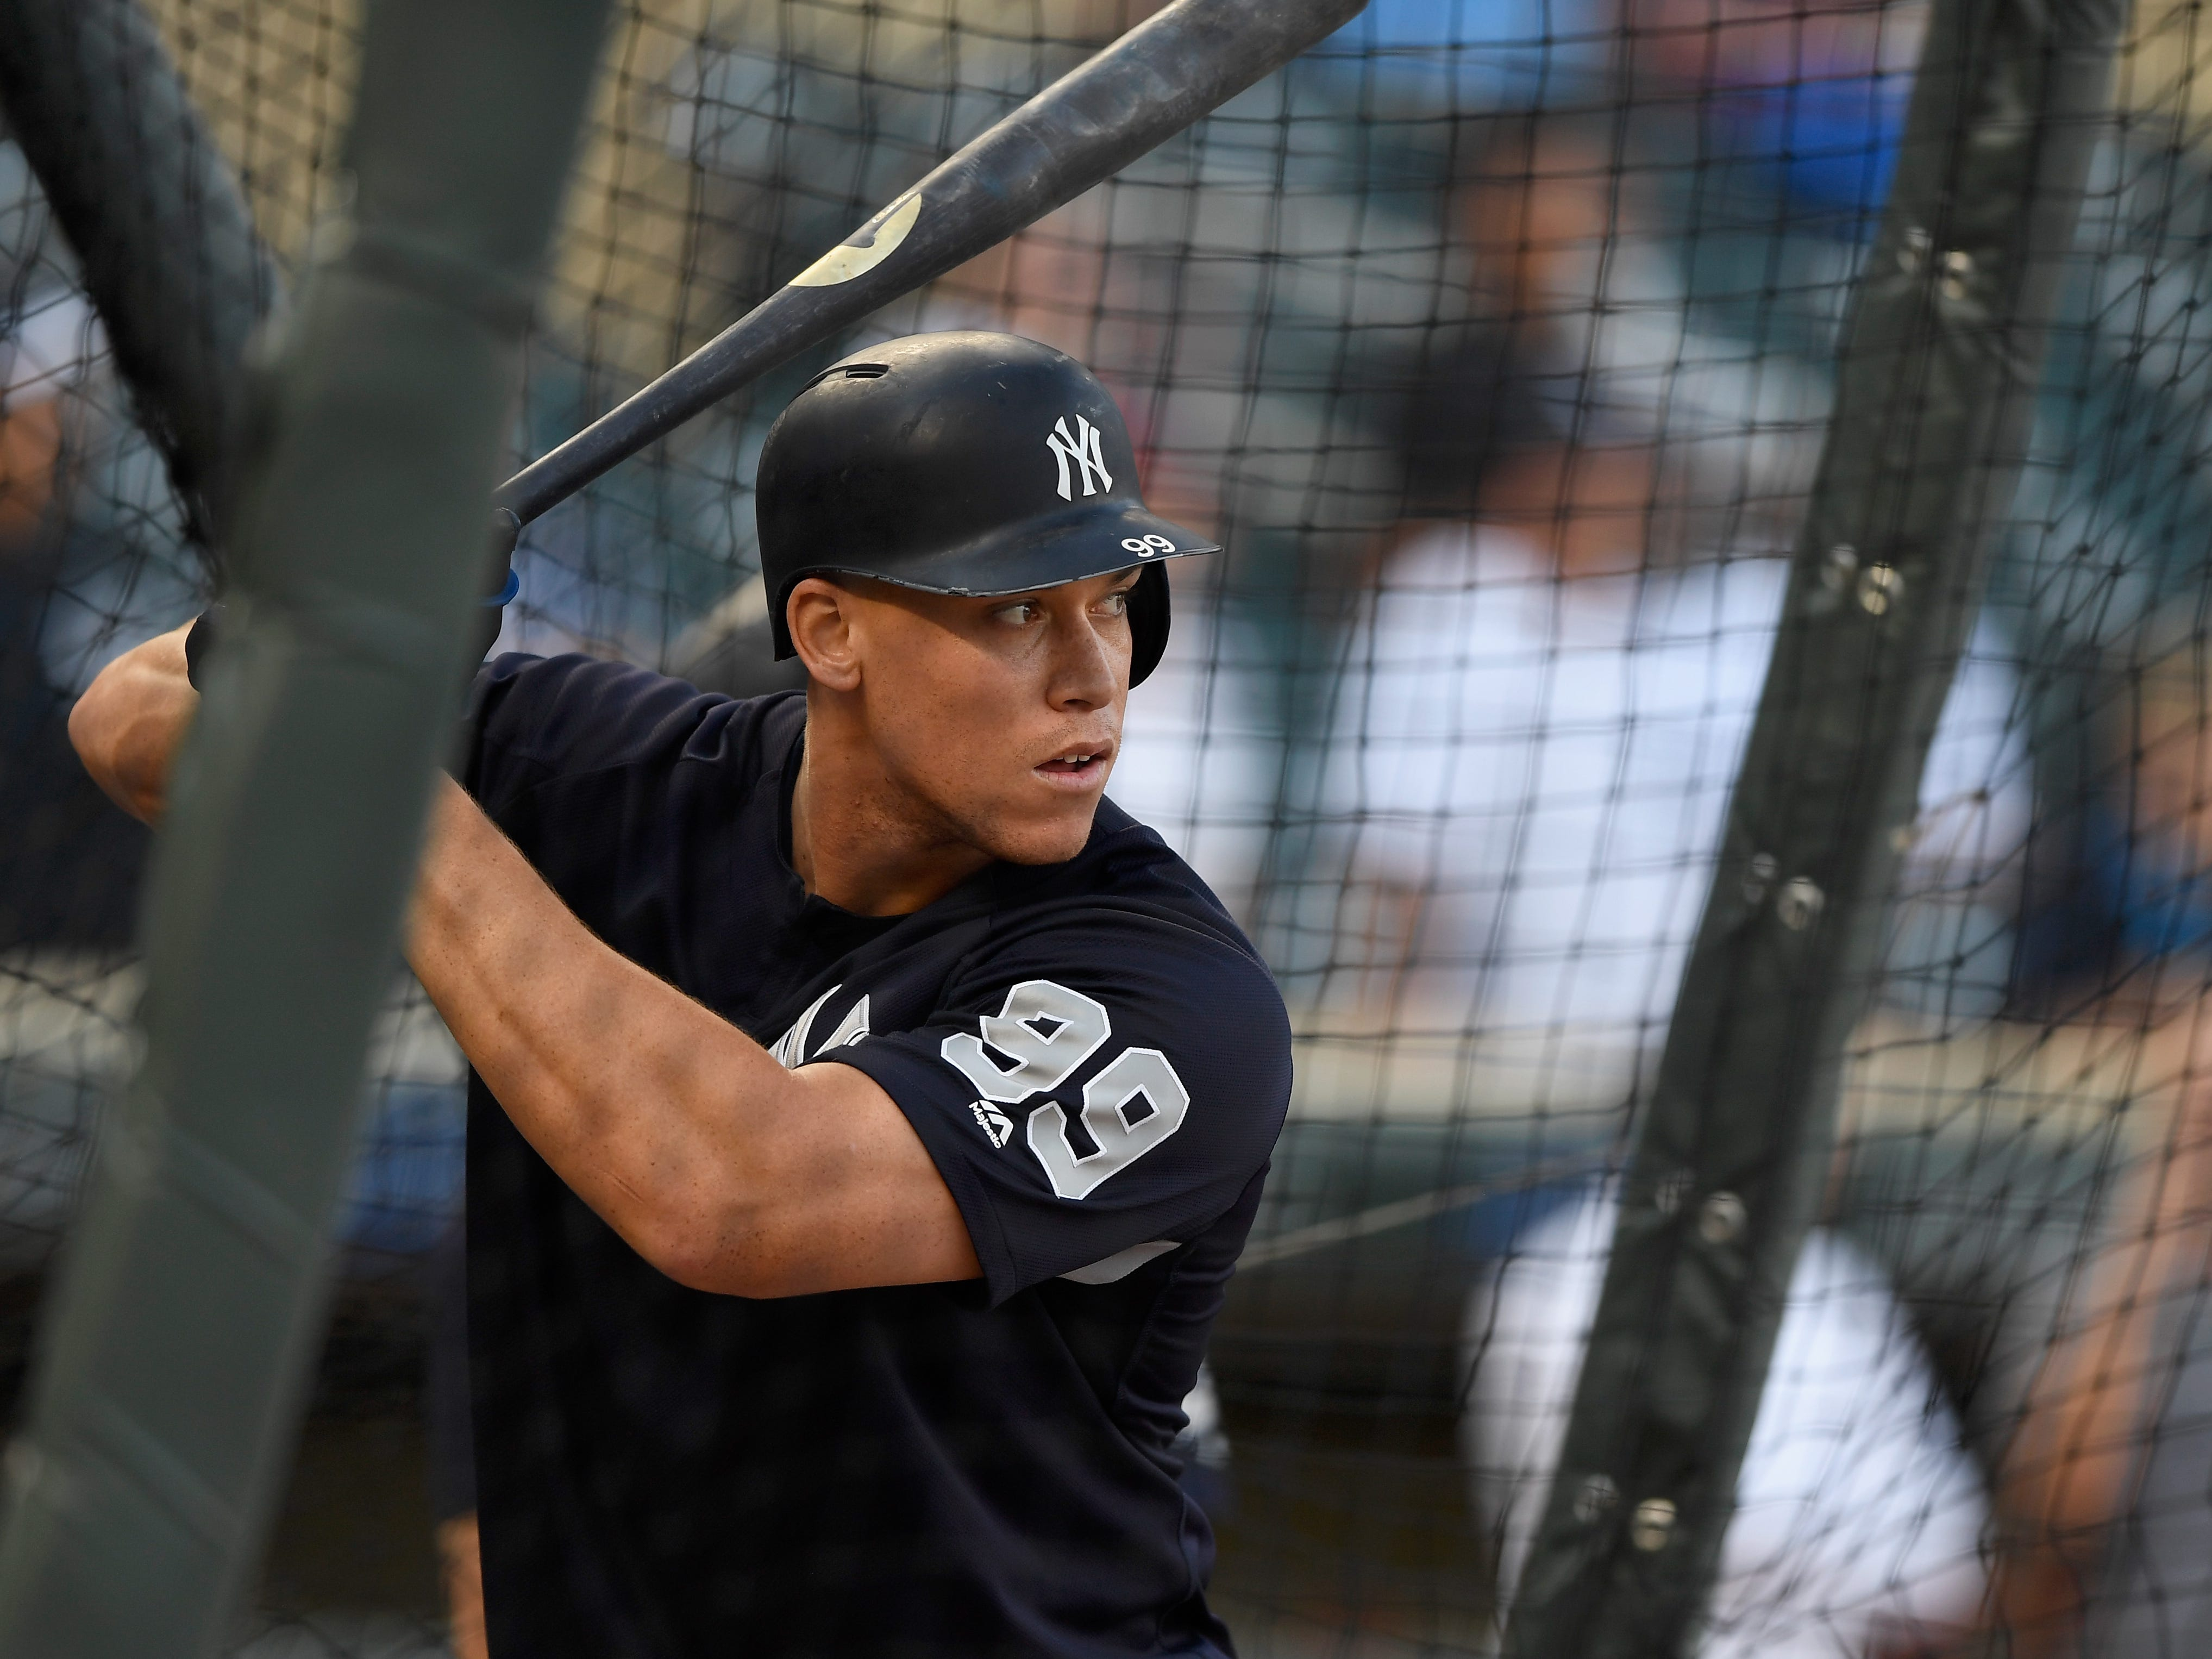 MINNEAPOLIS, MN - SEPTEMBER 12: Aaron Judge #99 of the New York Yankees takes batting practice before the game against the Minnesota Twins on September 12, 2018 at Target Field in Minneapolis, Minnesota.